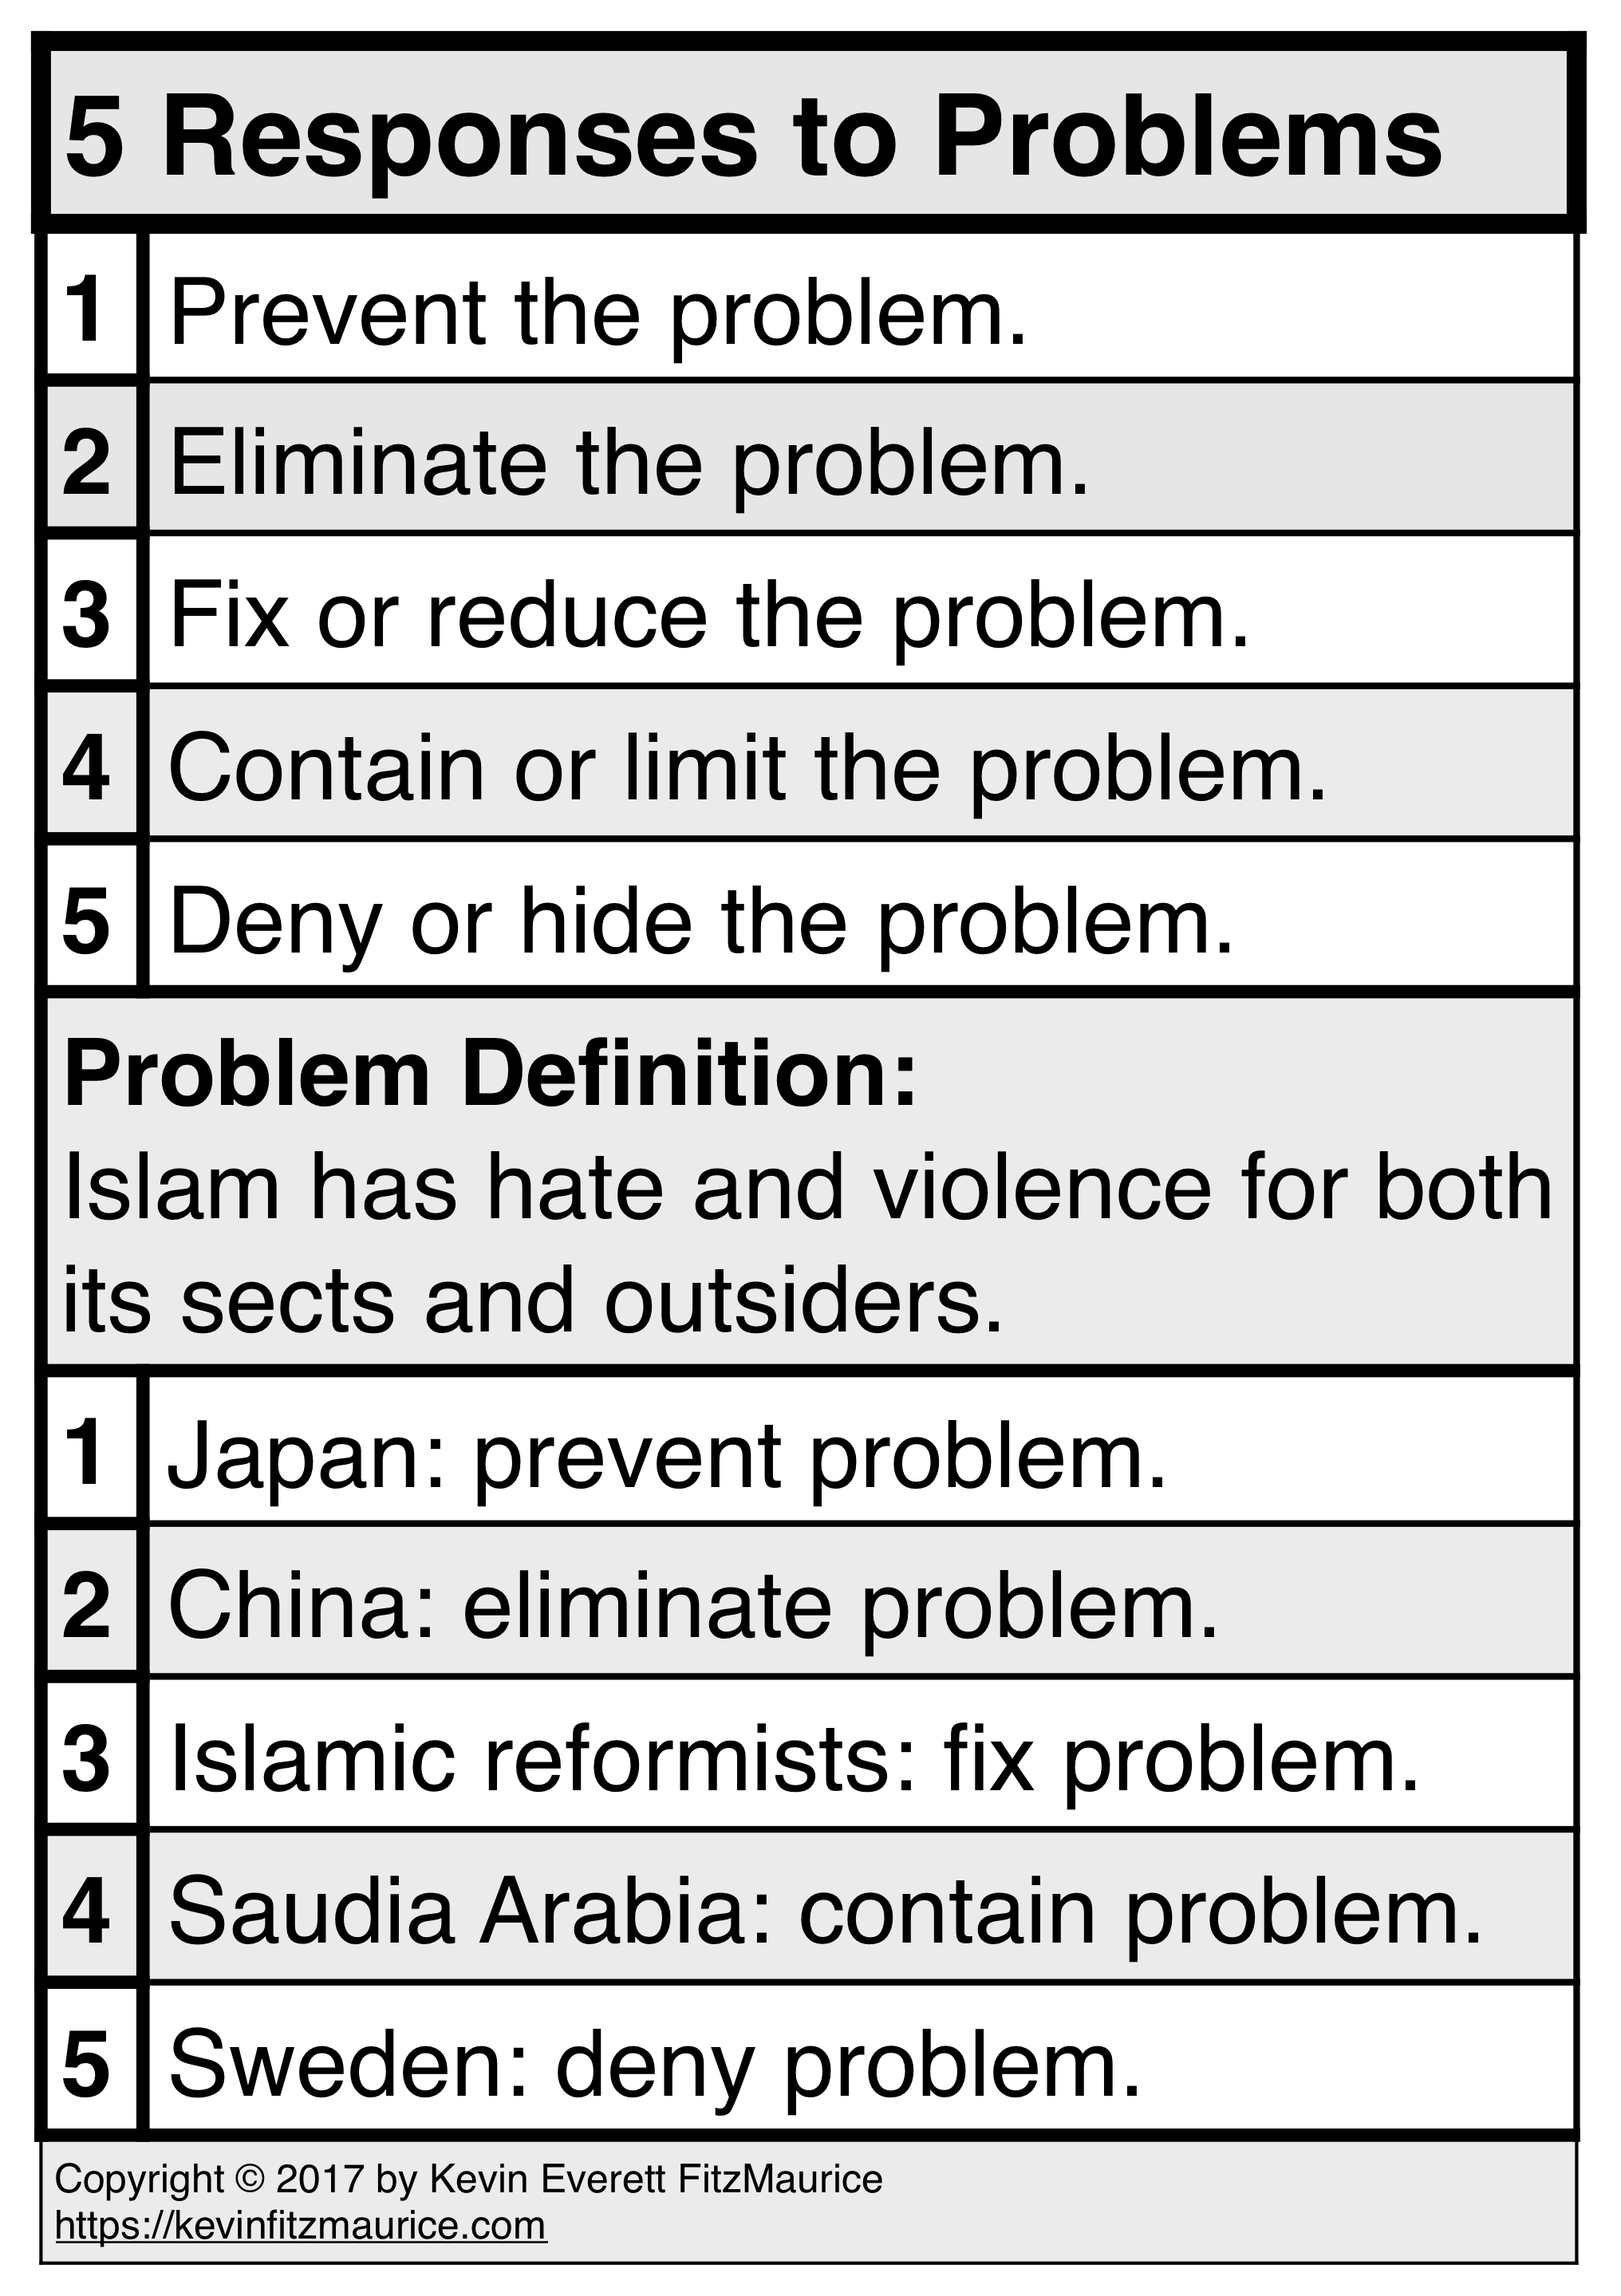 Example of Using 5 Responses to Problems